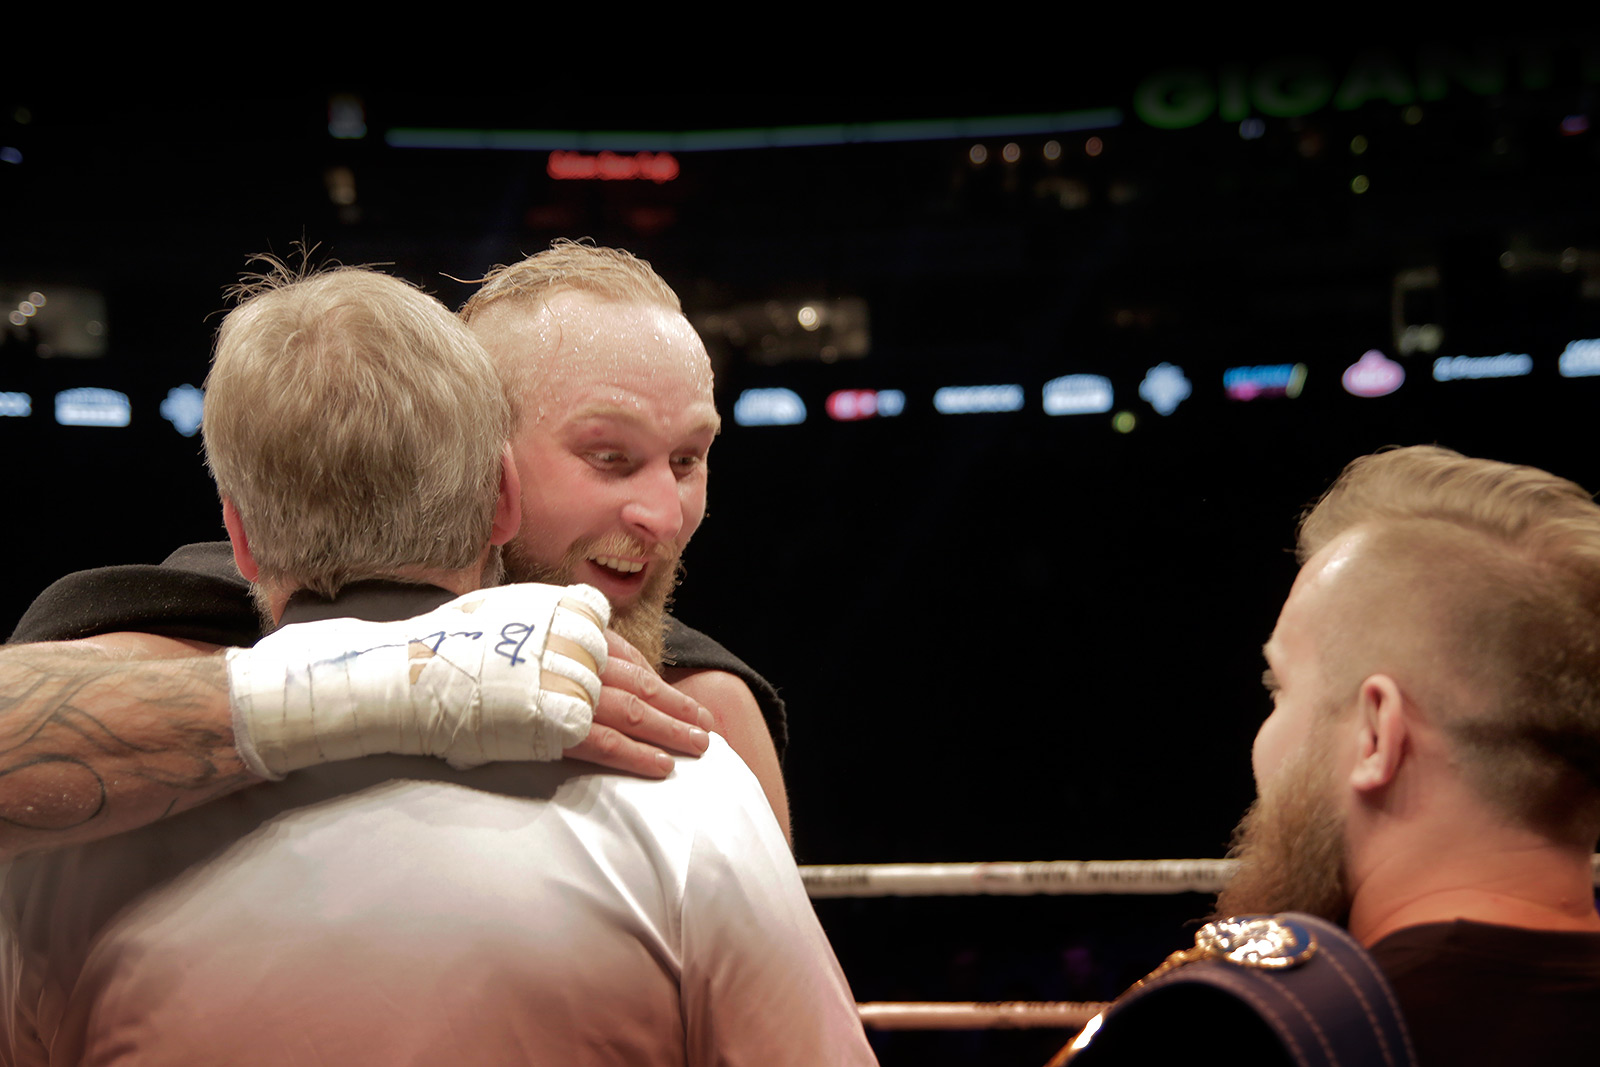 Helenius hugs his father, Karl. Picture: Tony Öhberg for Finland Today